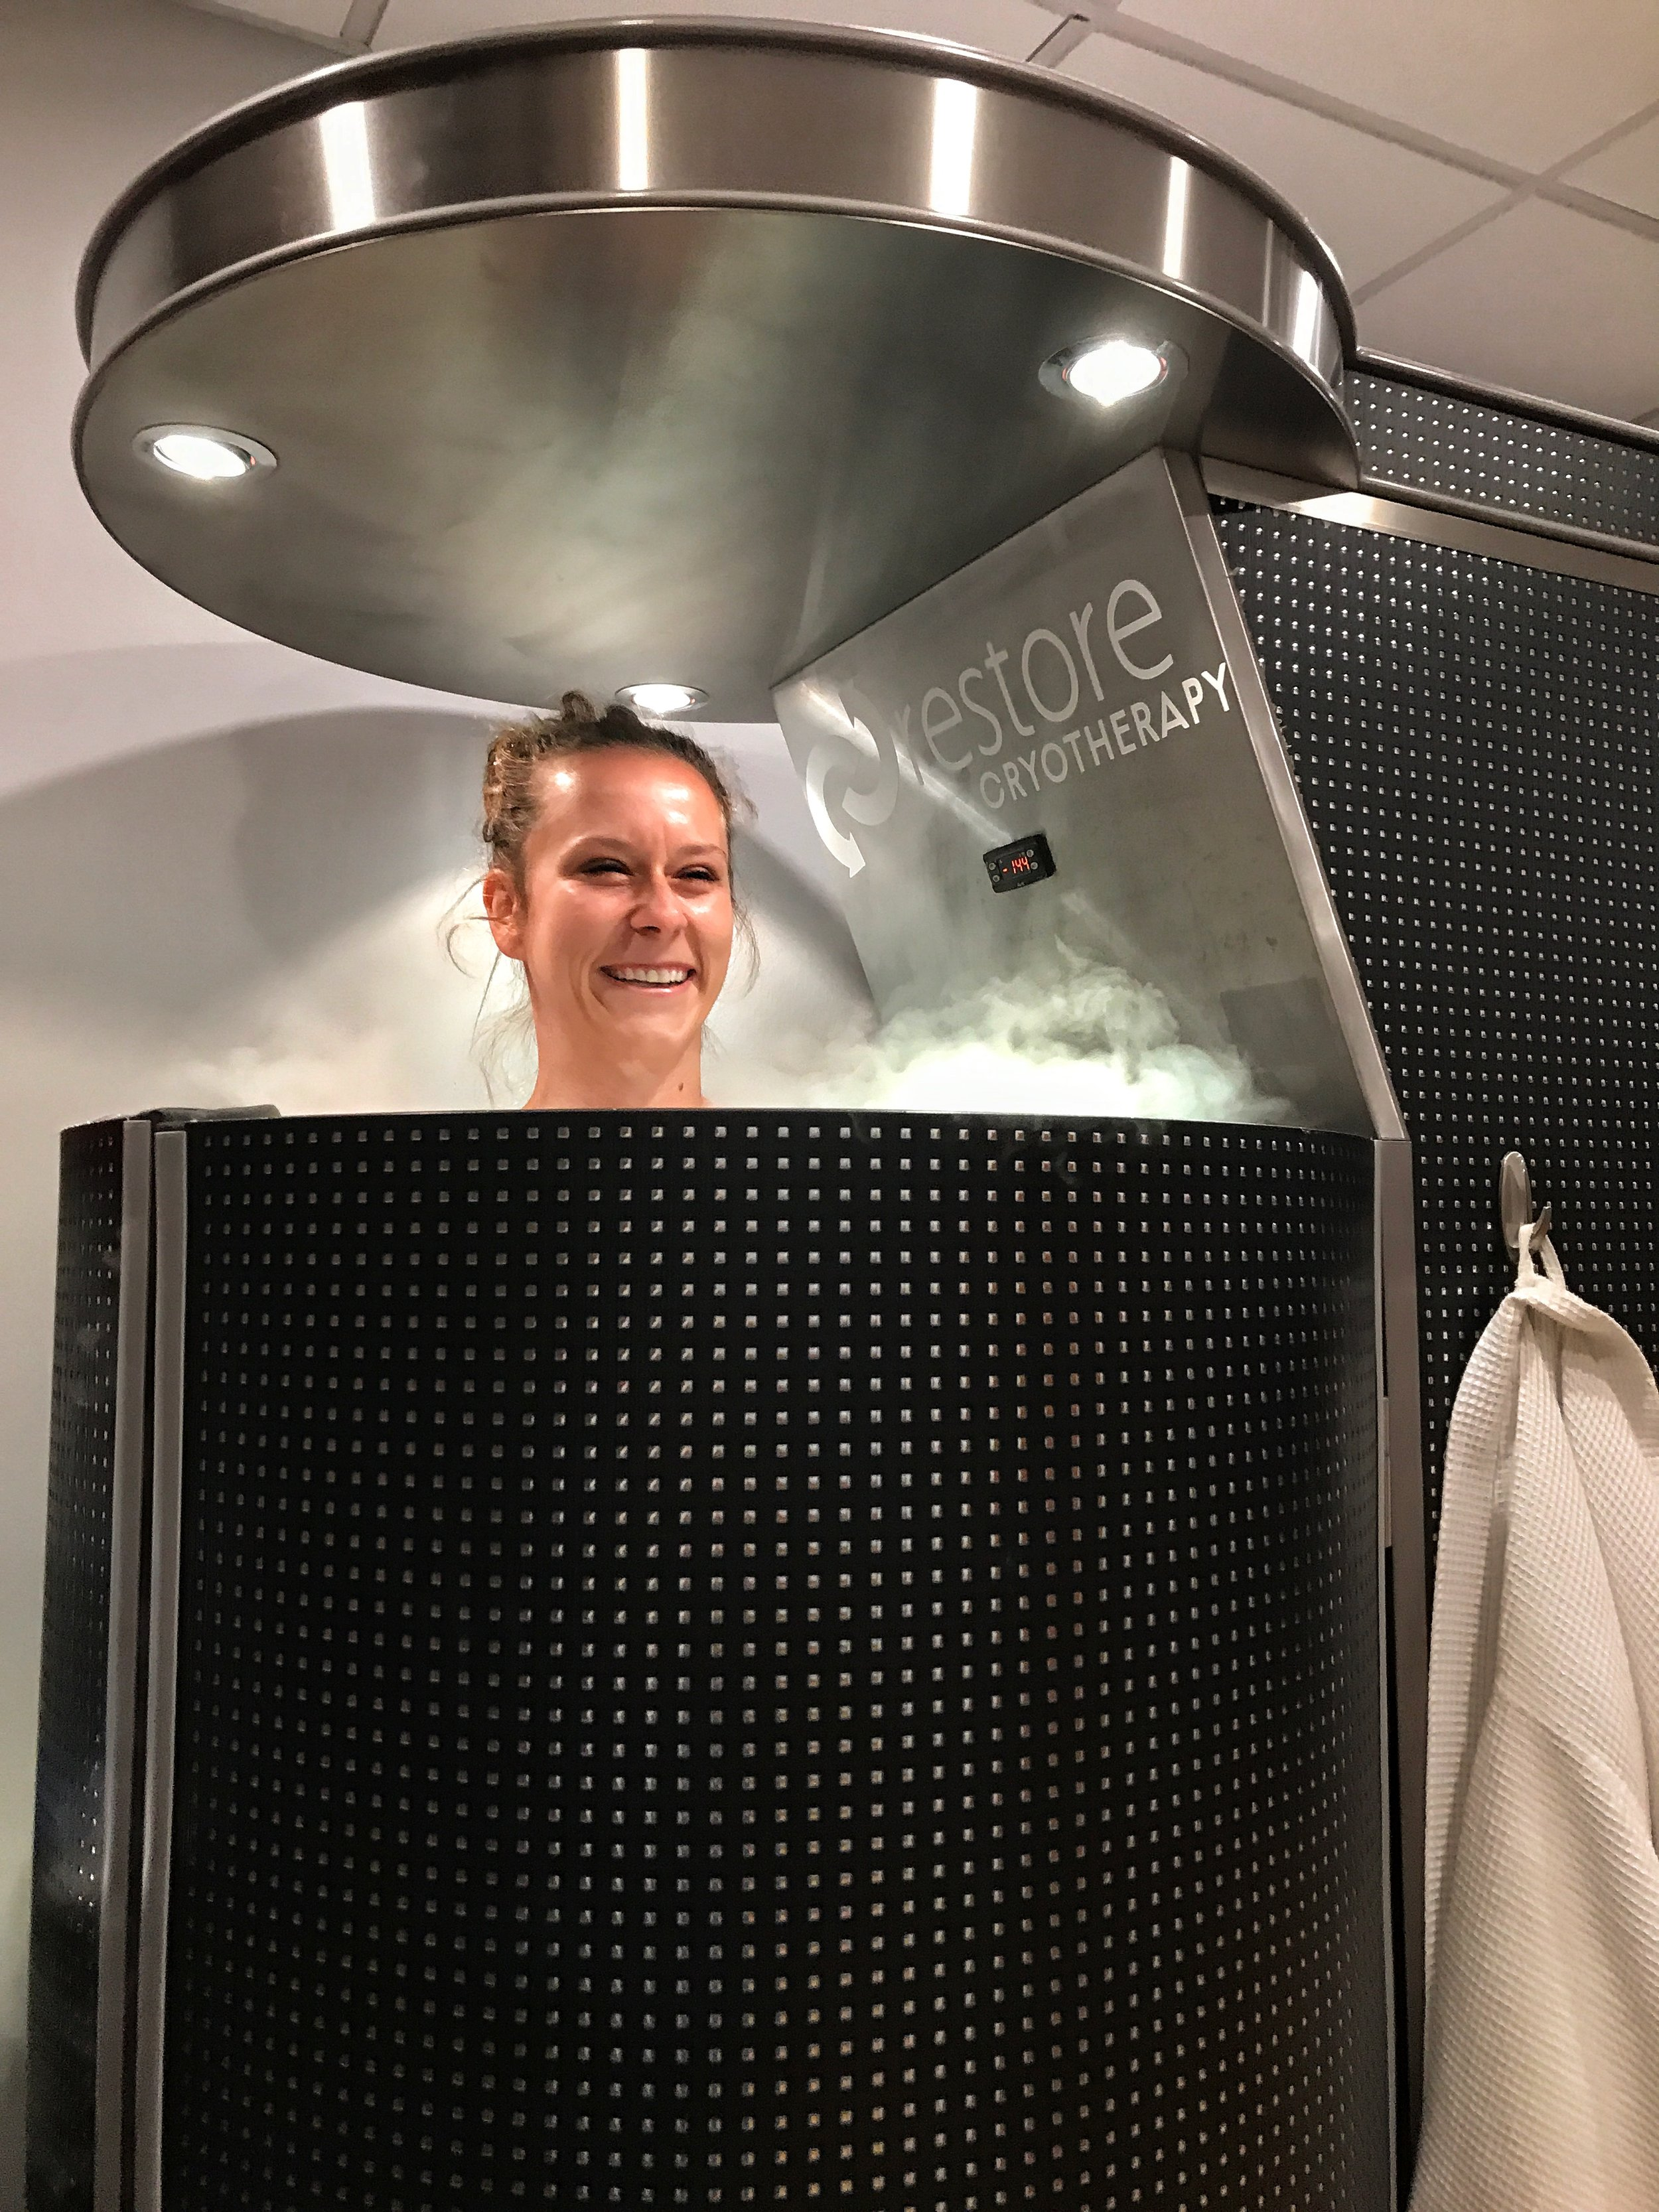 Nope, nothing to see here in the cryotherapy chamber.